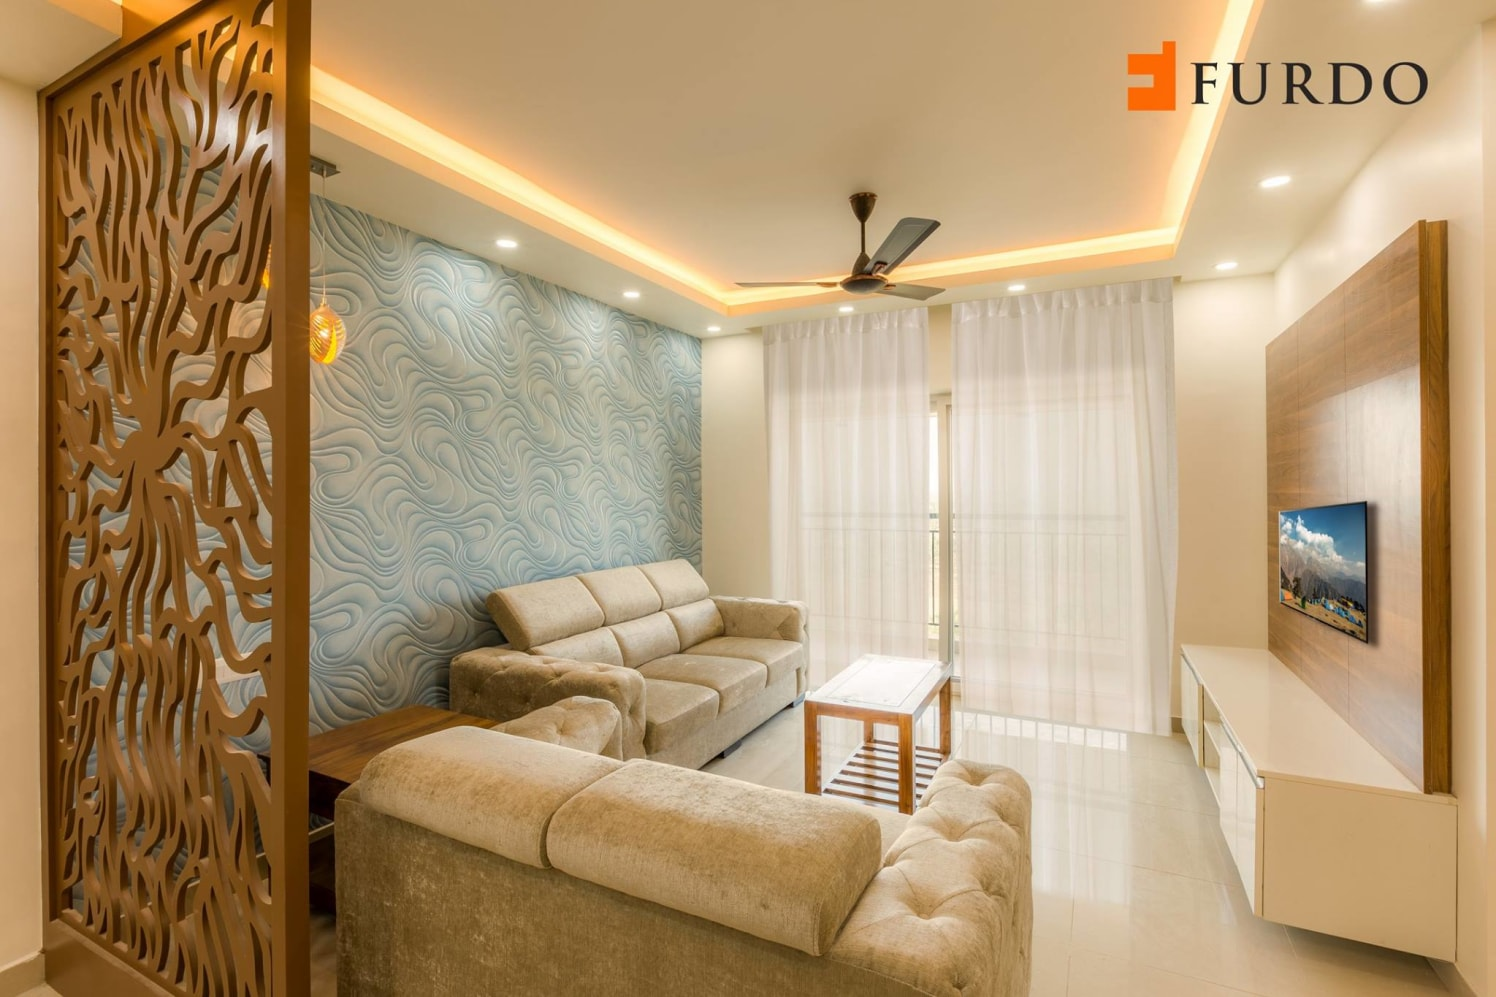 Living Room With Classic Contemporary Decor by Furdo.com Living-room Contemporary | Interior Design Photos & Ideas